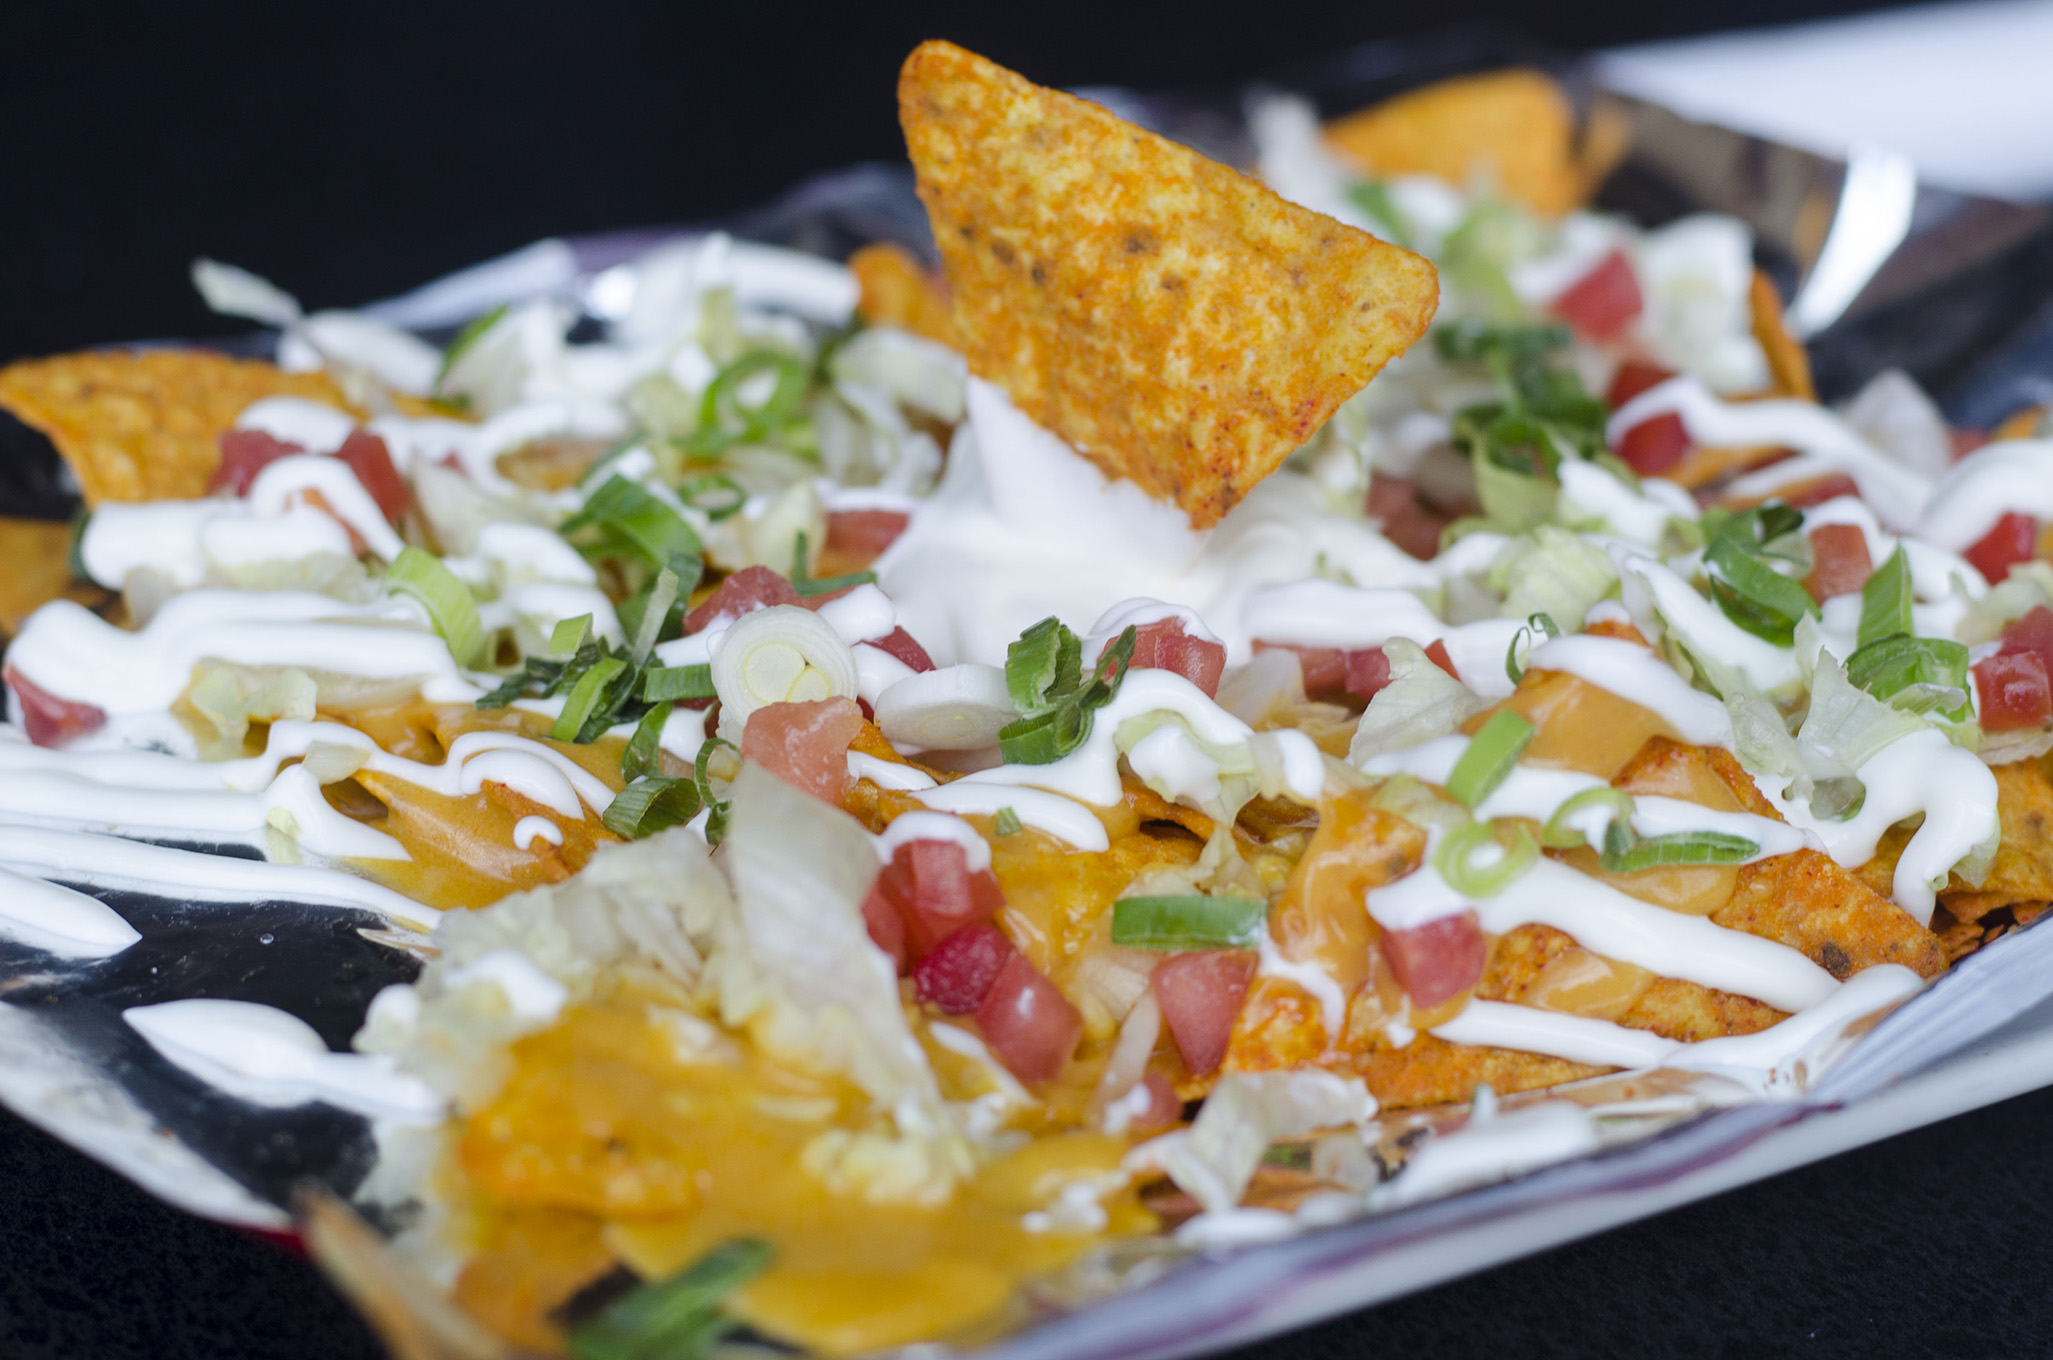 Dorito nachos from Eastwood's Grill & Lounge in Windsor, Ontario.